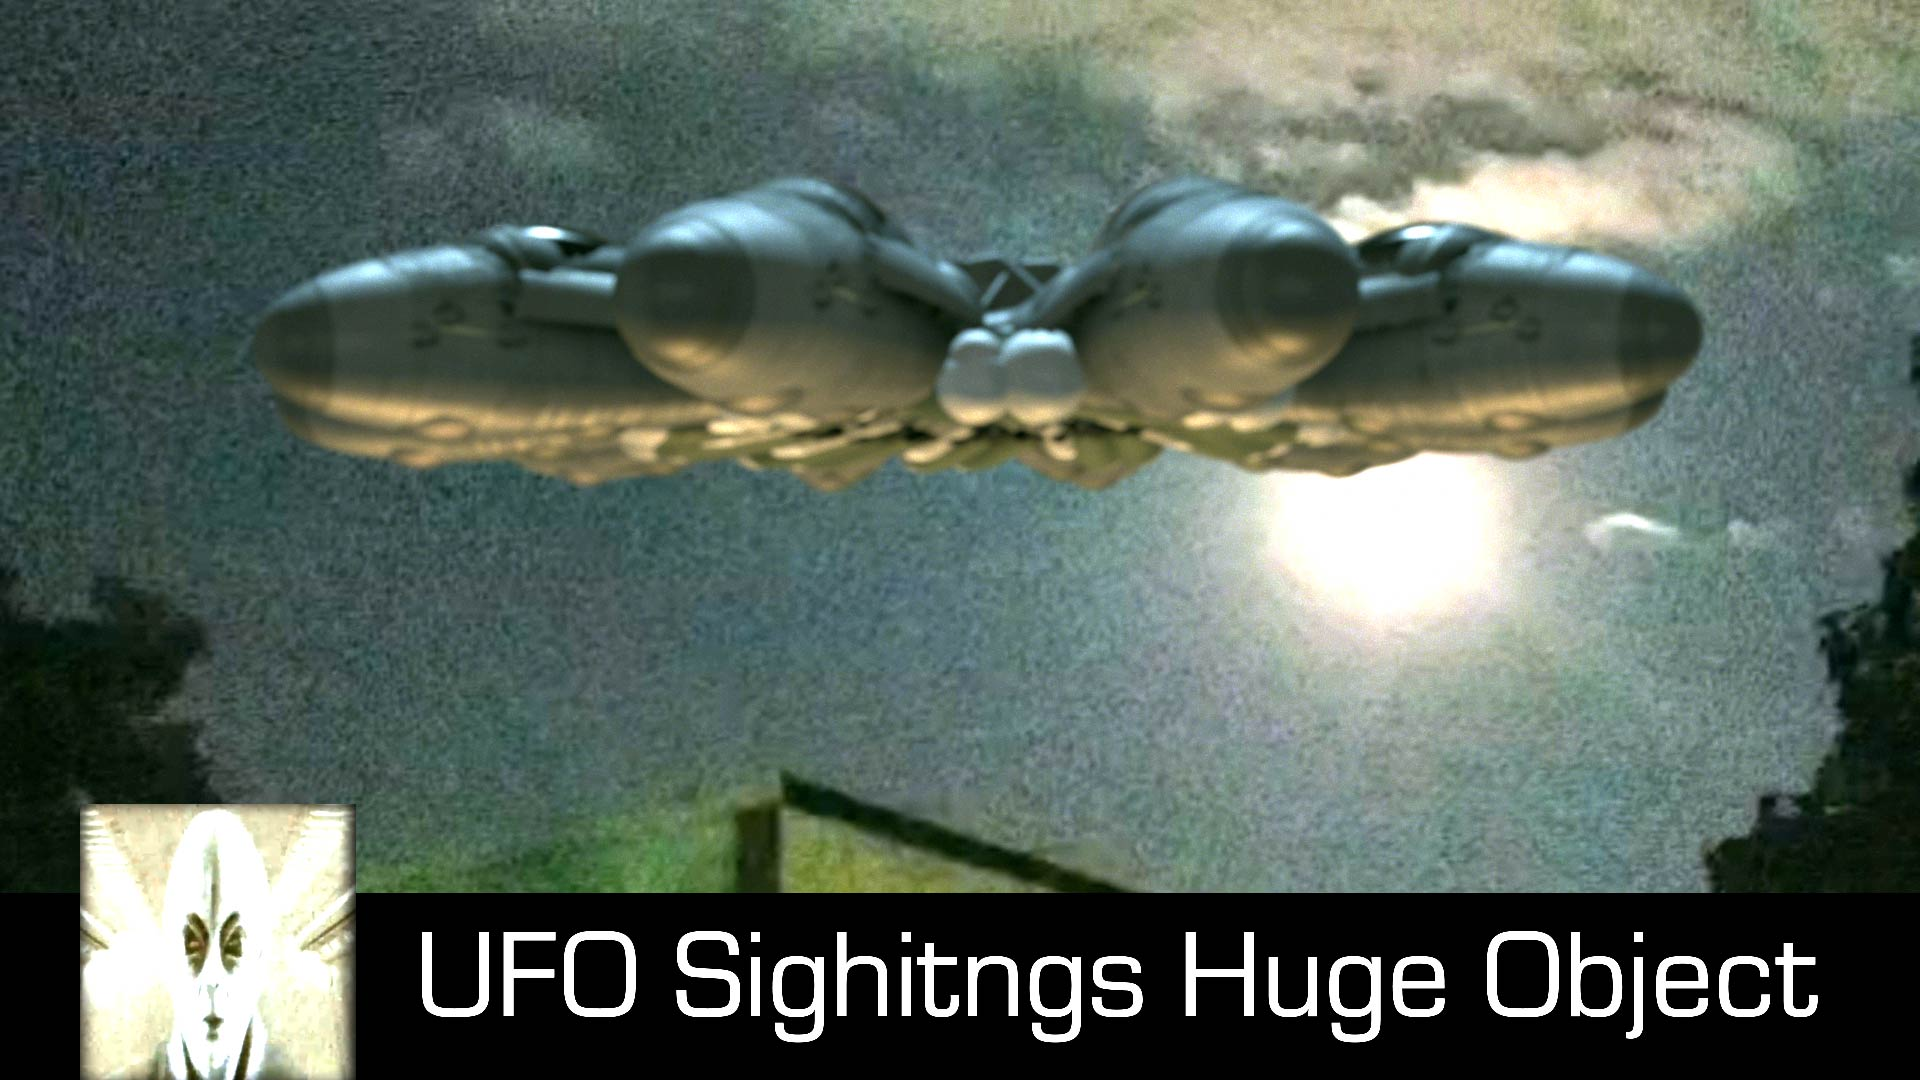 UFO Sightings Huge Unknown Object Germany August 3rd 2018